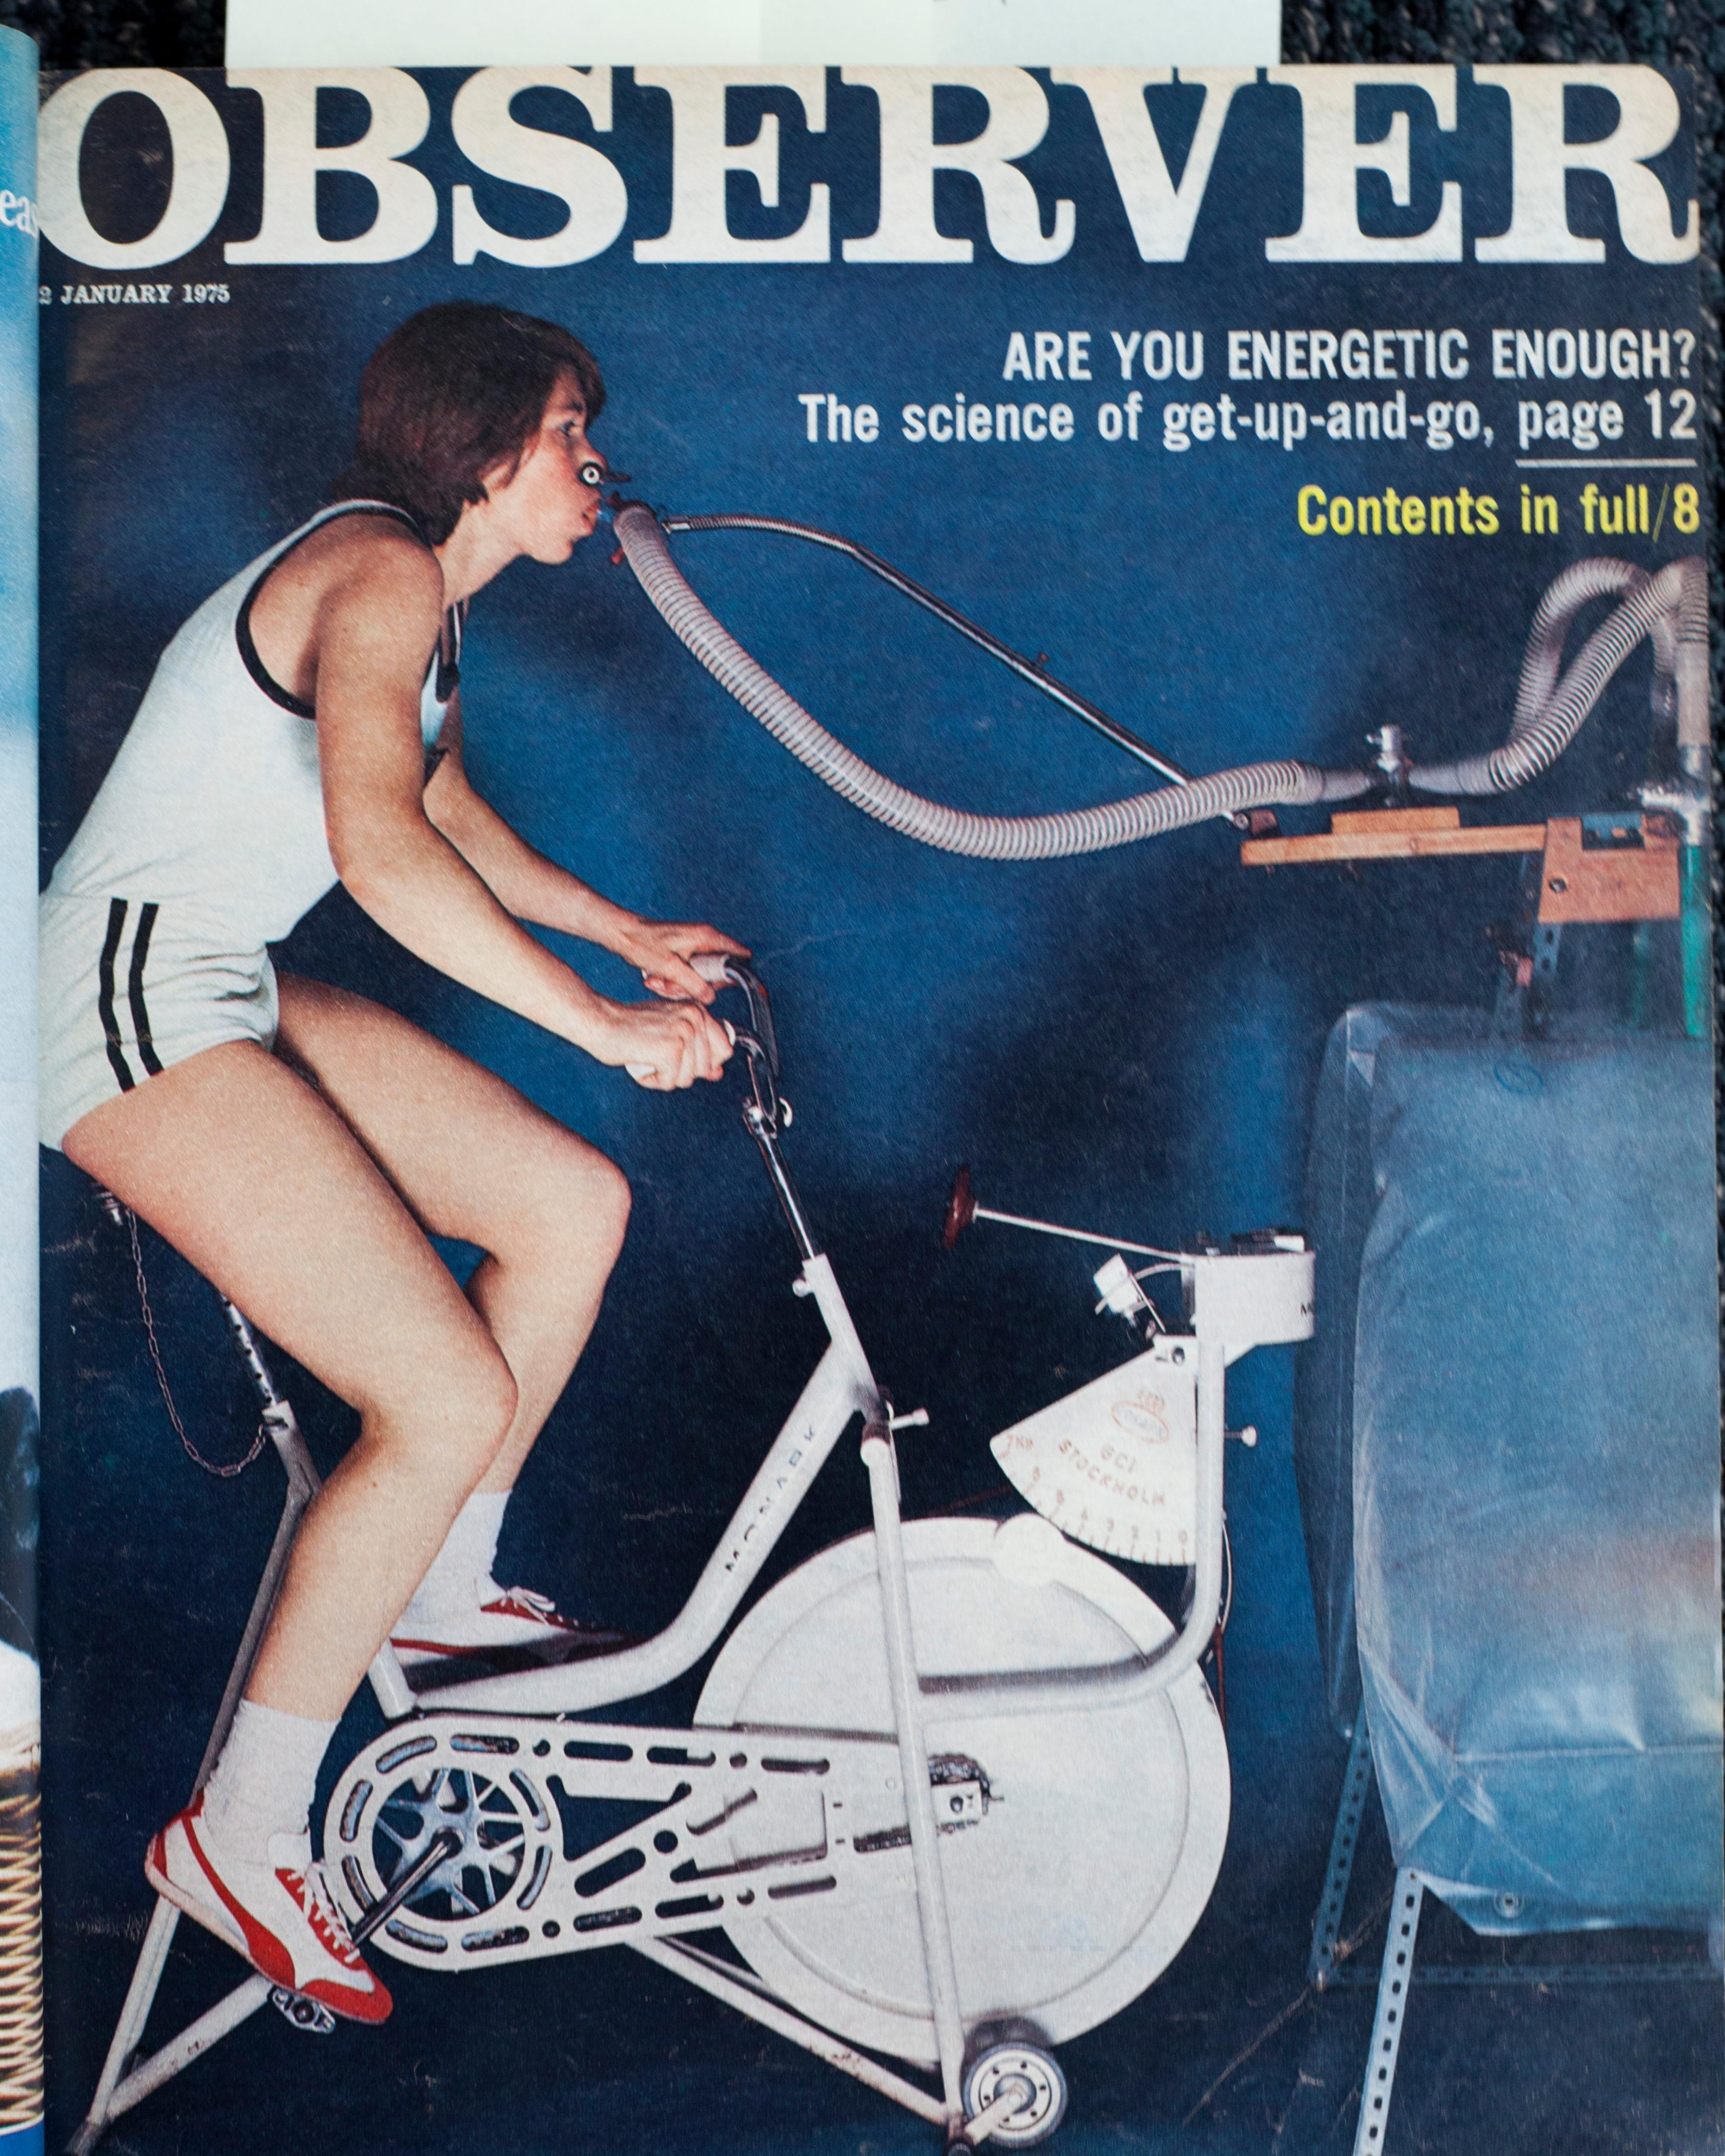 From the archive: health and wellbeing advice from 1975